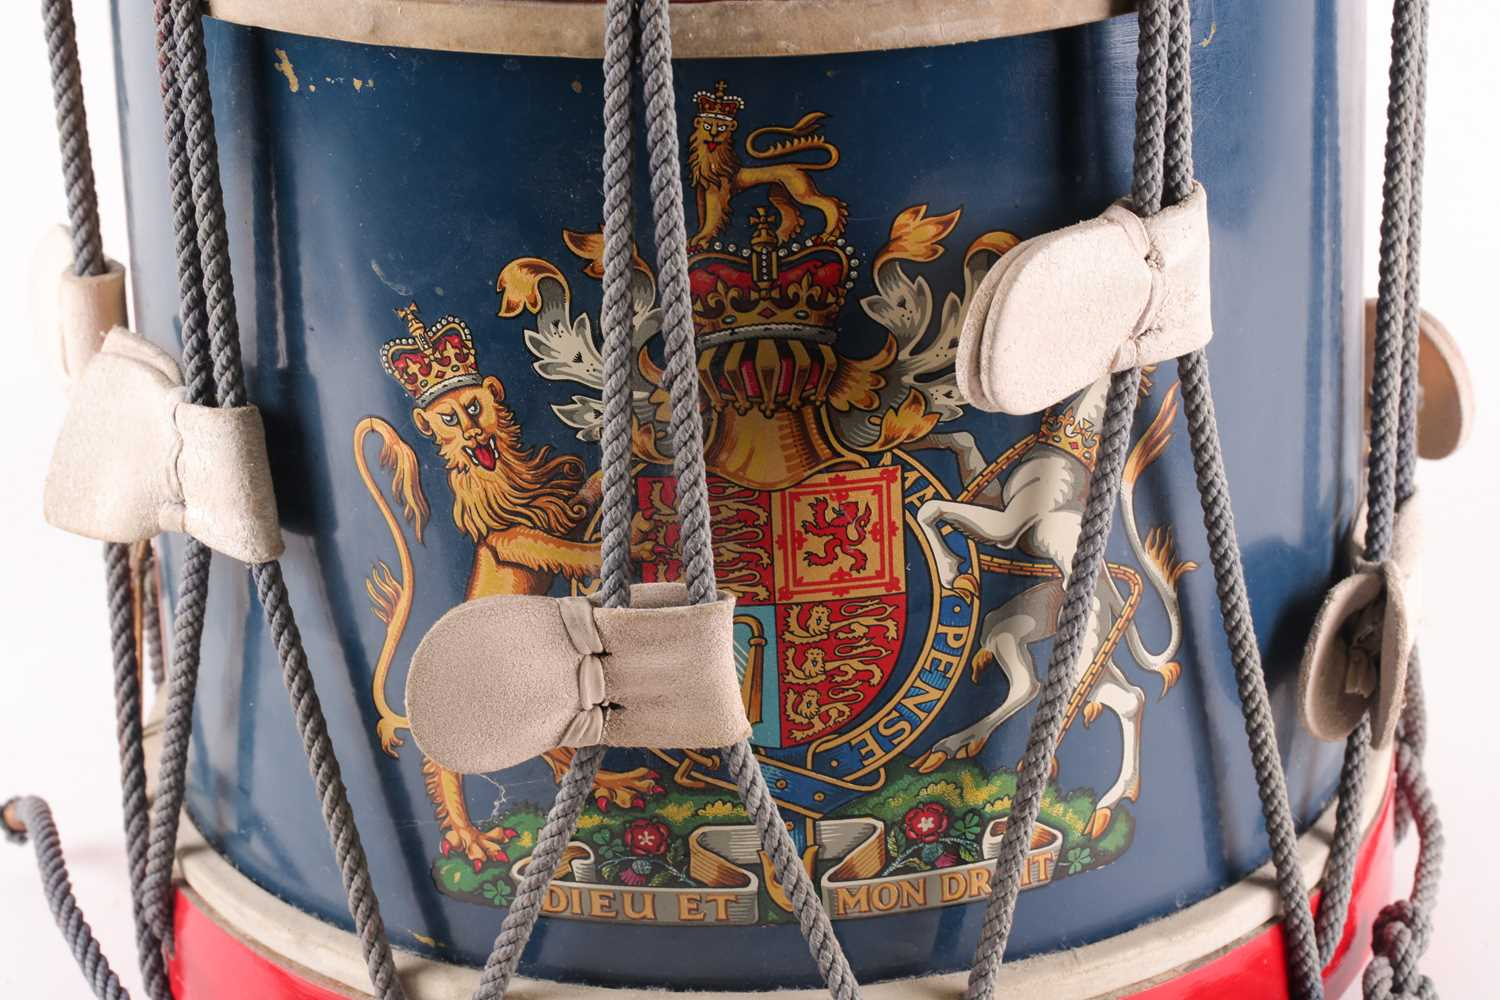 A 20th century regimental (Queen's own regiment of foot?) side drum by Peter Henderson ltd of - Image 5 of 5